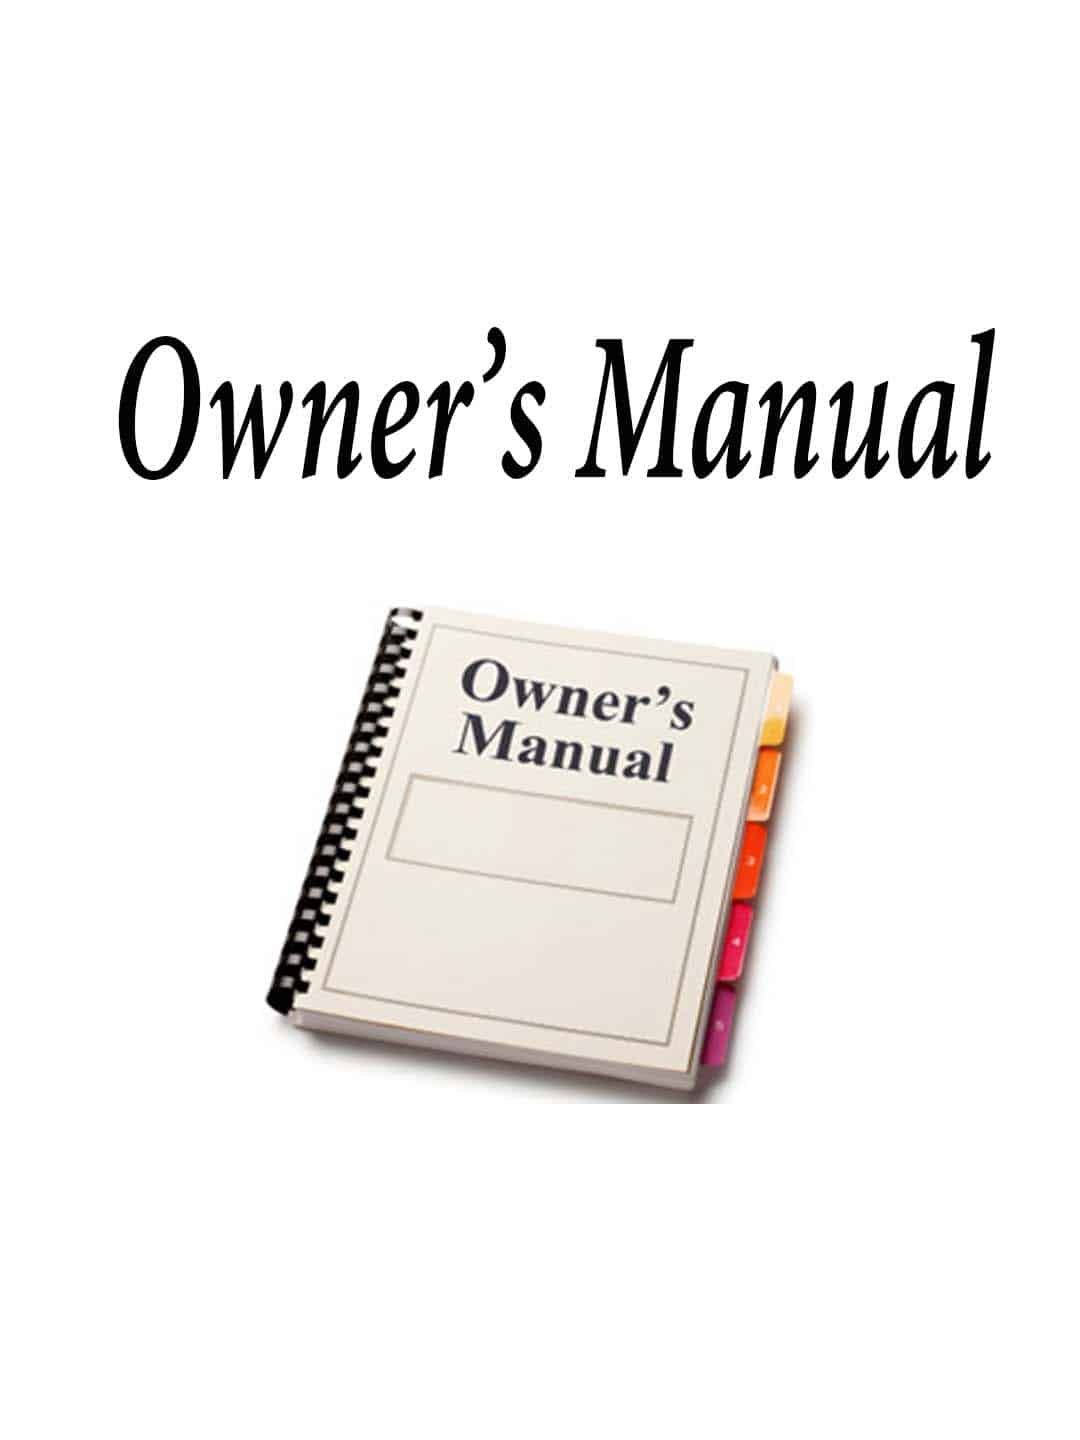 OMRDL412SW - Cobra® Owner's Manual RDL412SW